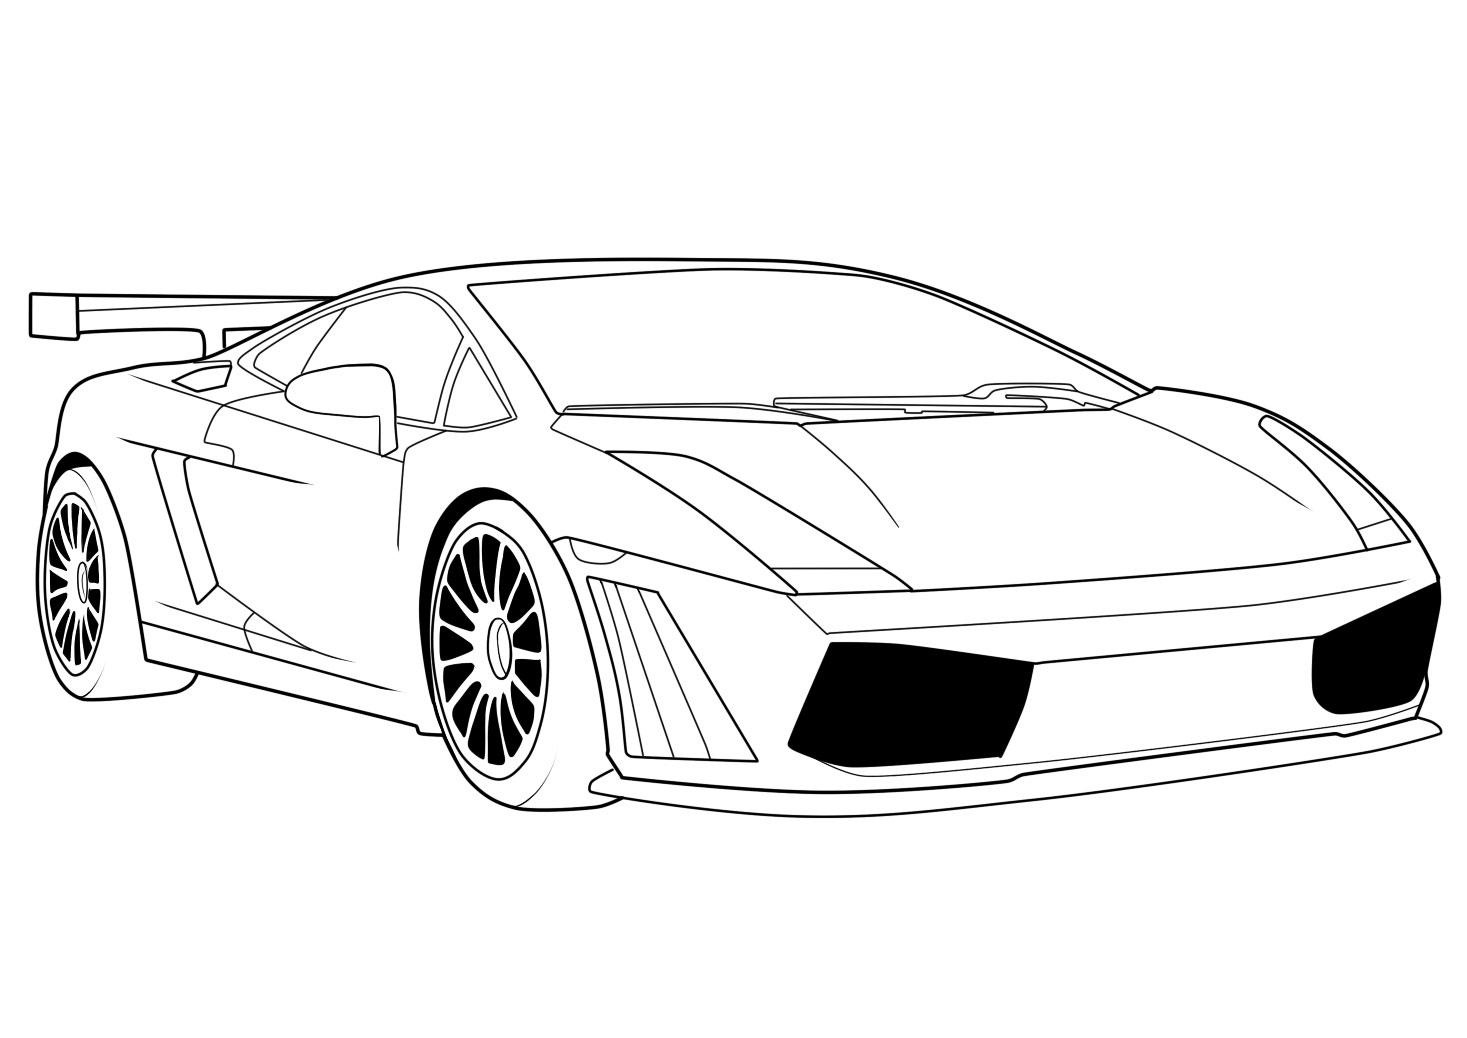 printable coloring pages of cars free printable cars coloring pages for kids cool2bkids cars printable coloring pages of